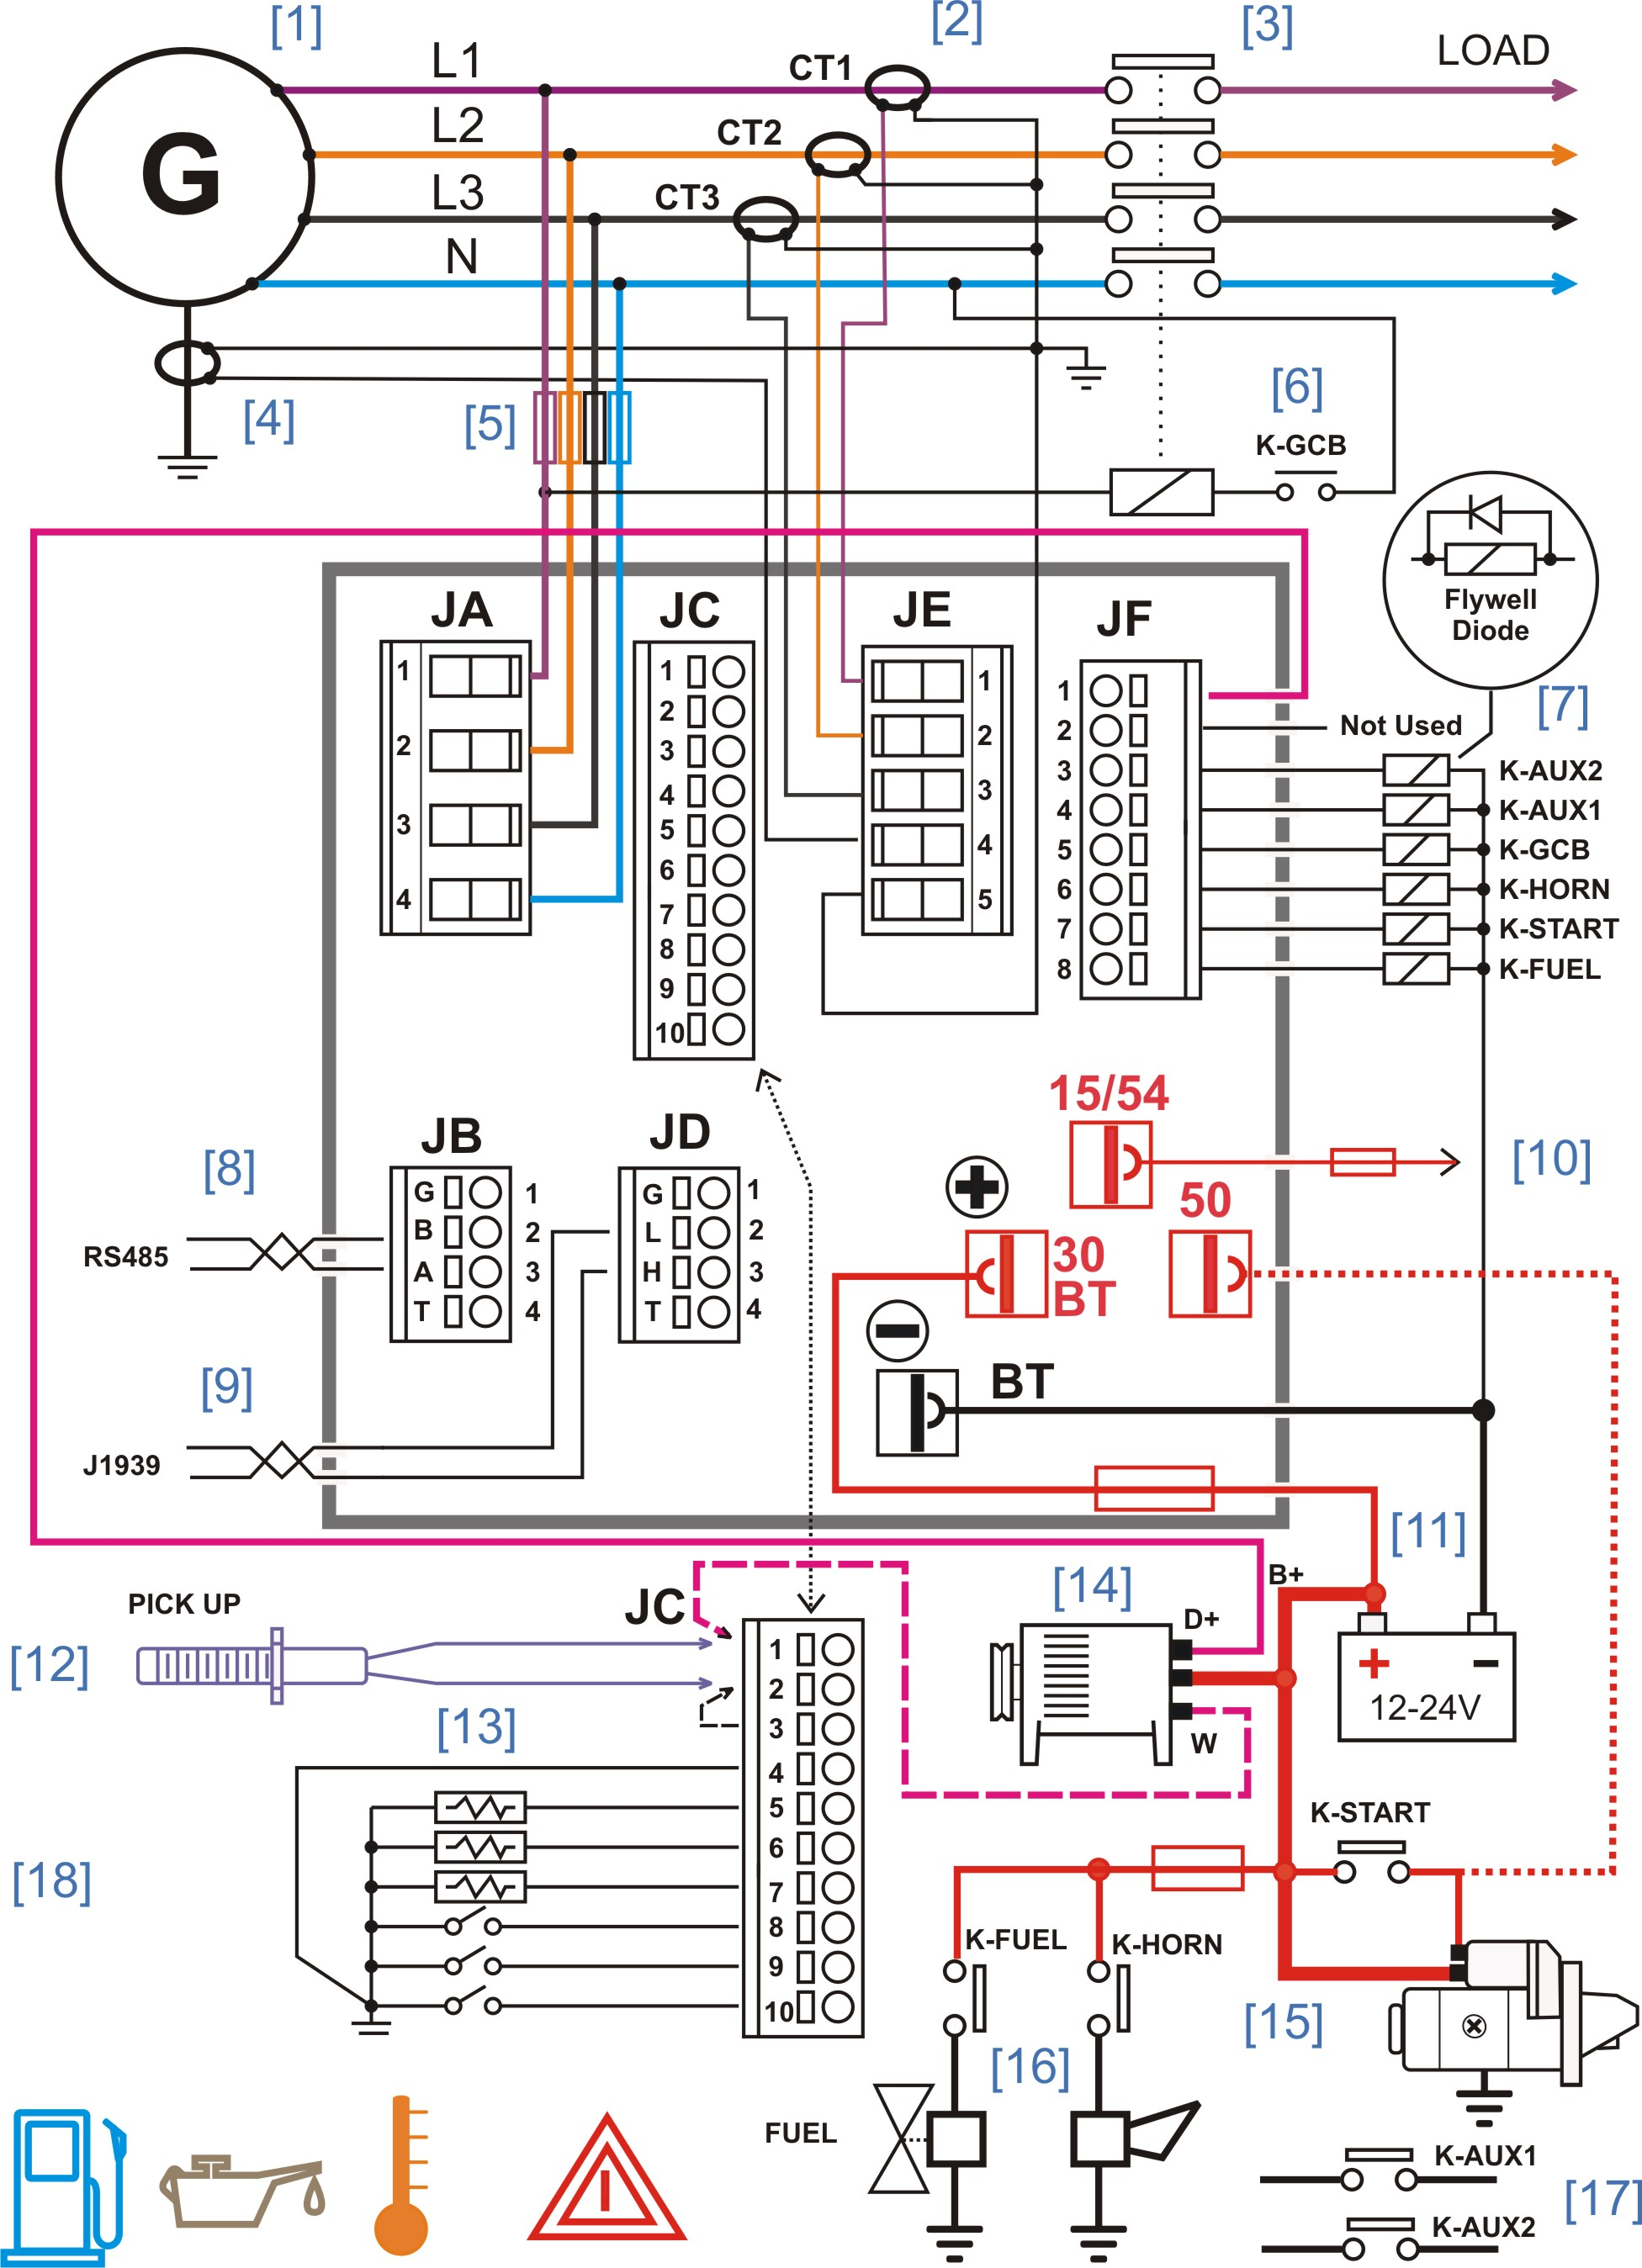 Panel Wiring Colors Wire Center Front Control Basics Schematic Diagrams Rh Ogmconsulting Co F